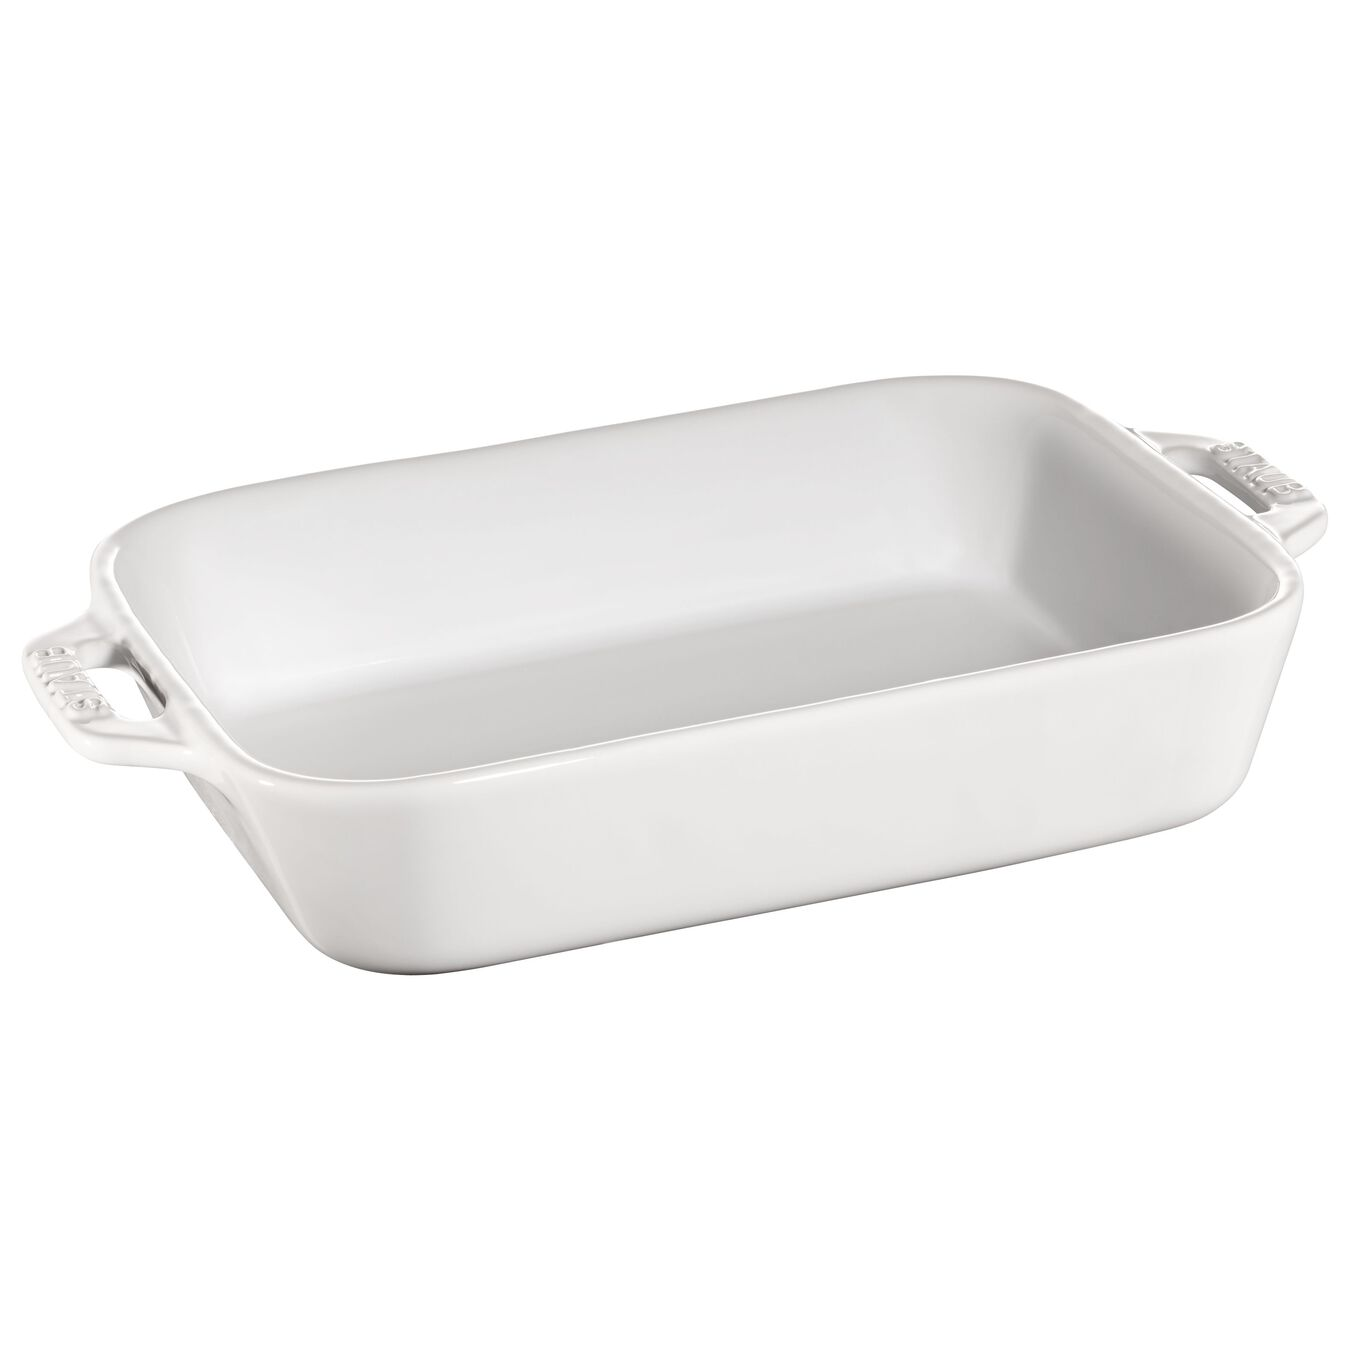 2-pc Rectangular Baking Dish Set - White,,large 3